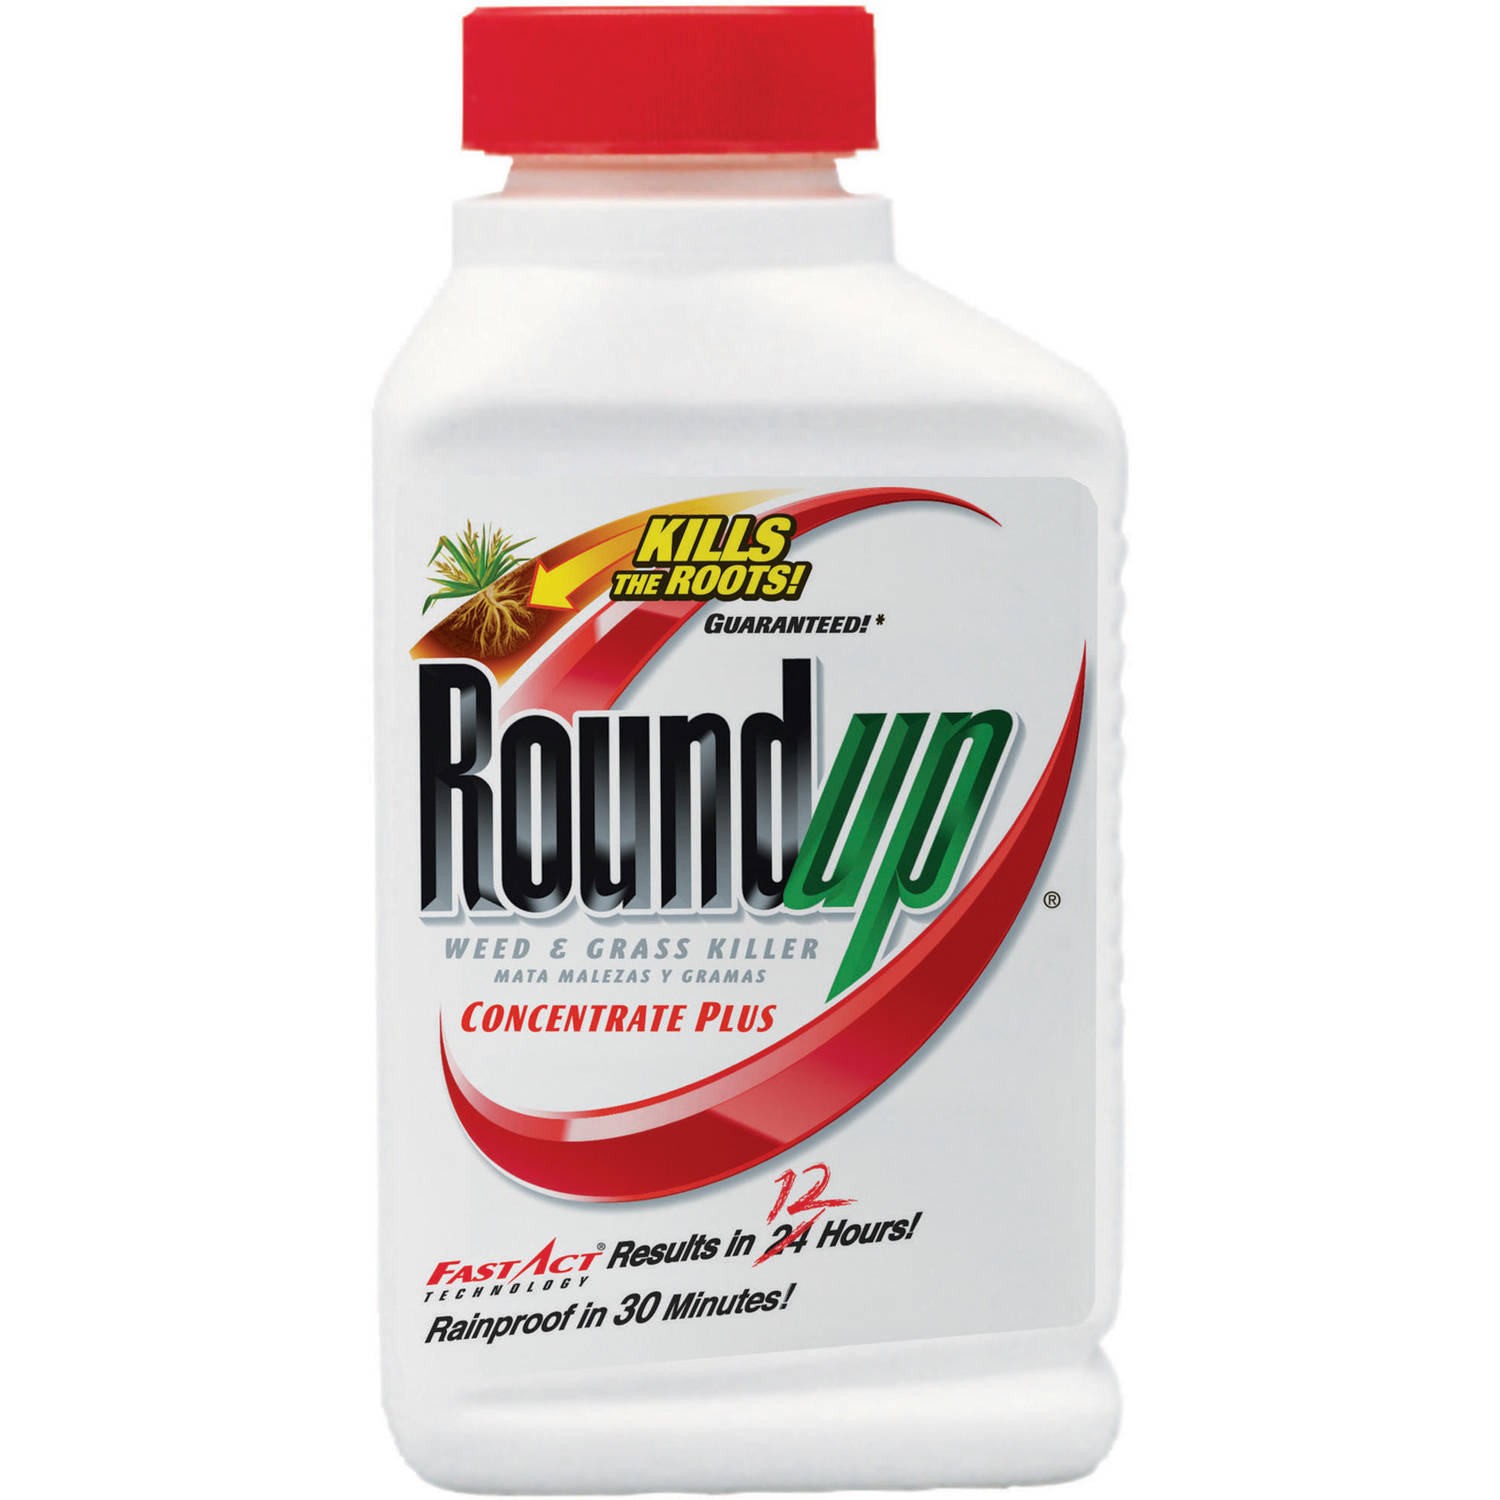 Roundup Weed & Grass Killer Concentrate Plus, 16 oz